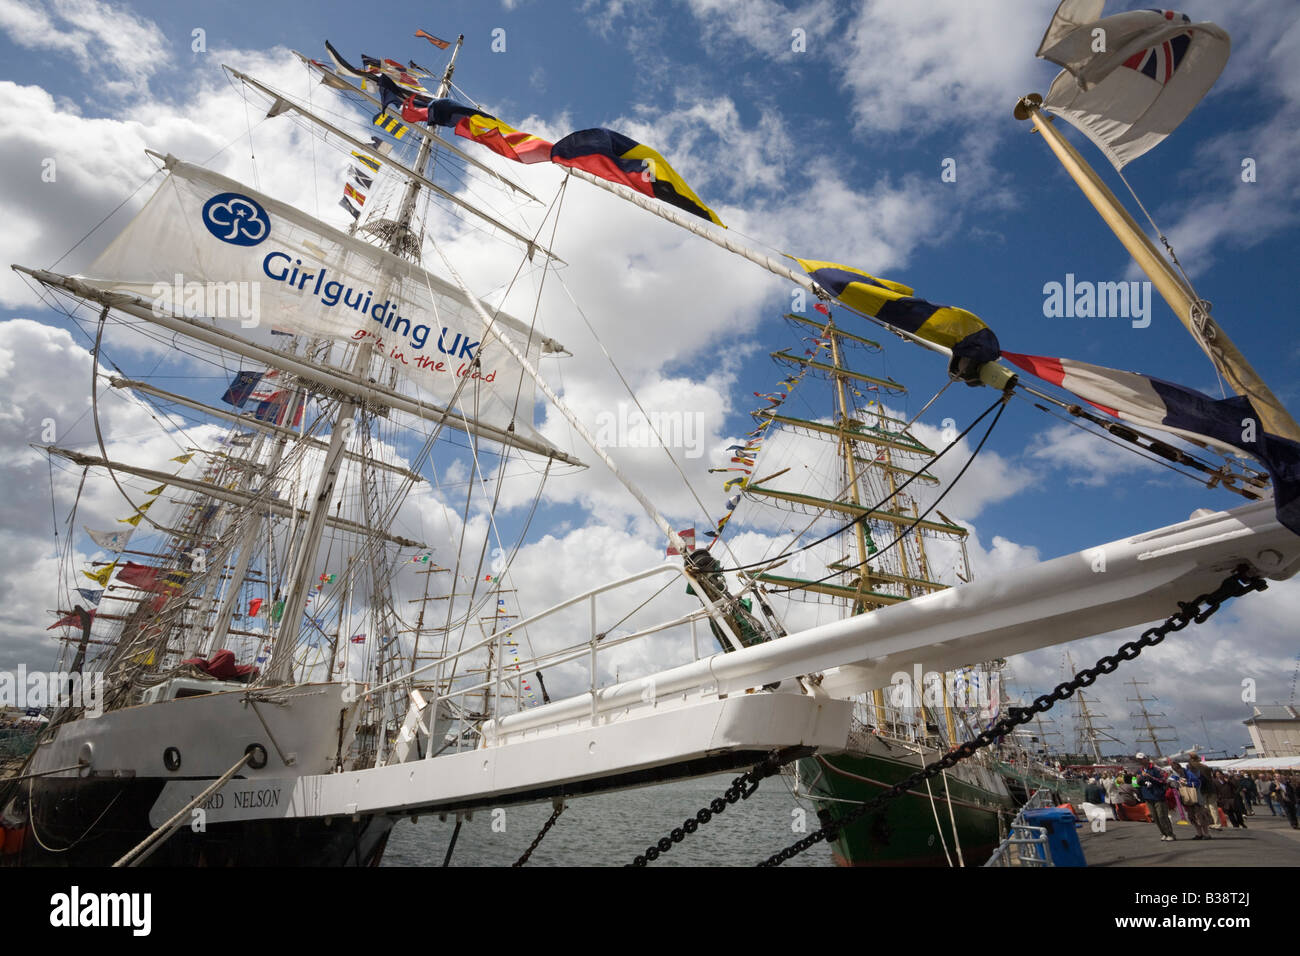 Three masted Barque from UK in Tall Ships race berthed at Wellington Dock Merseyside England UK 2008 - Stock Image